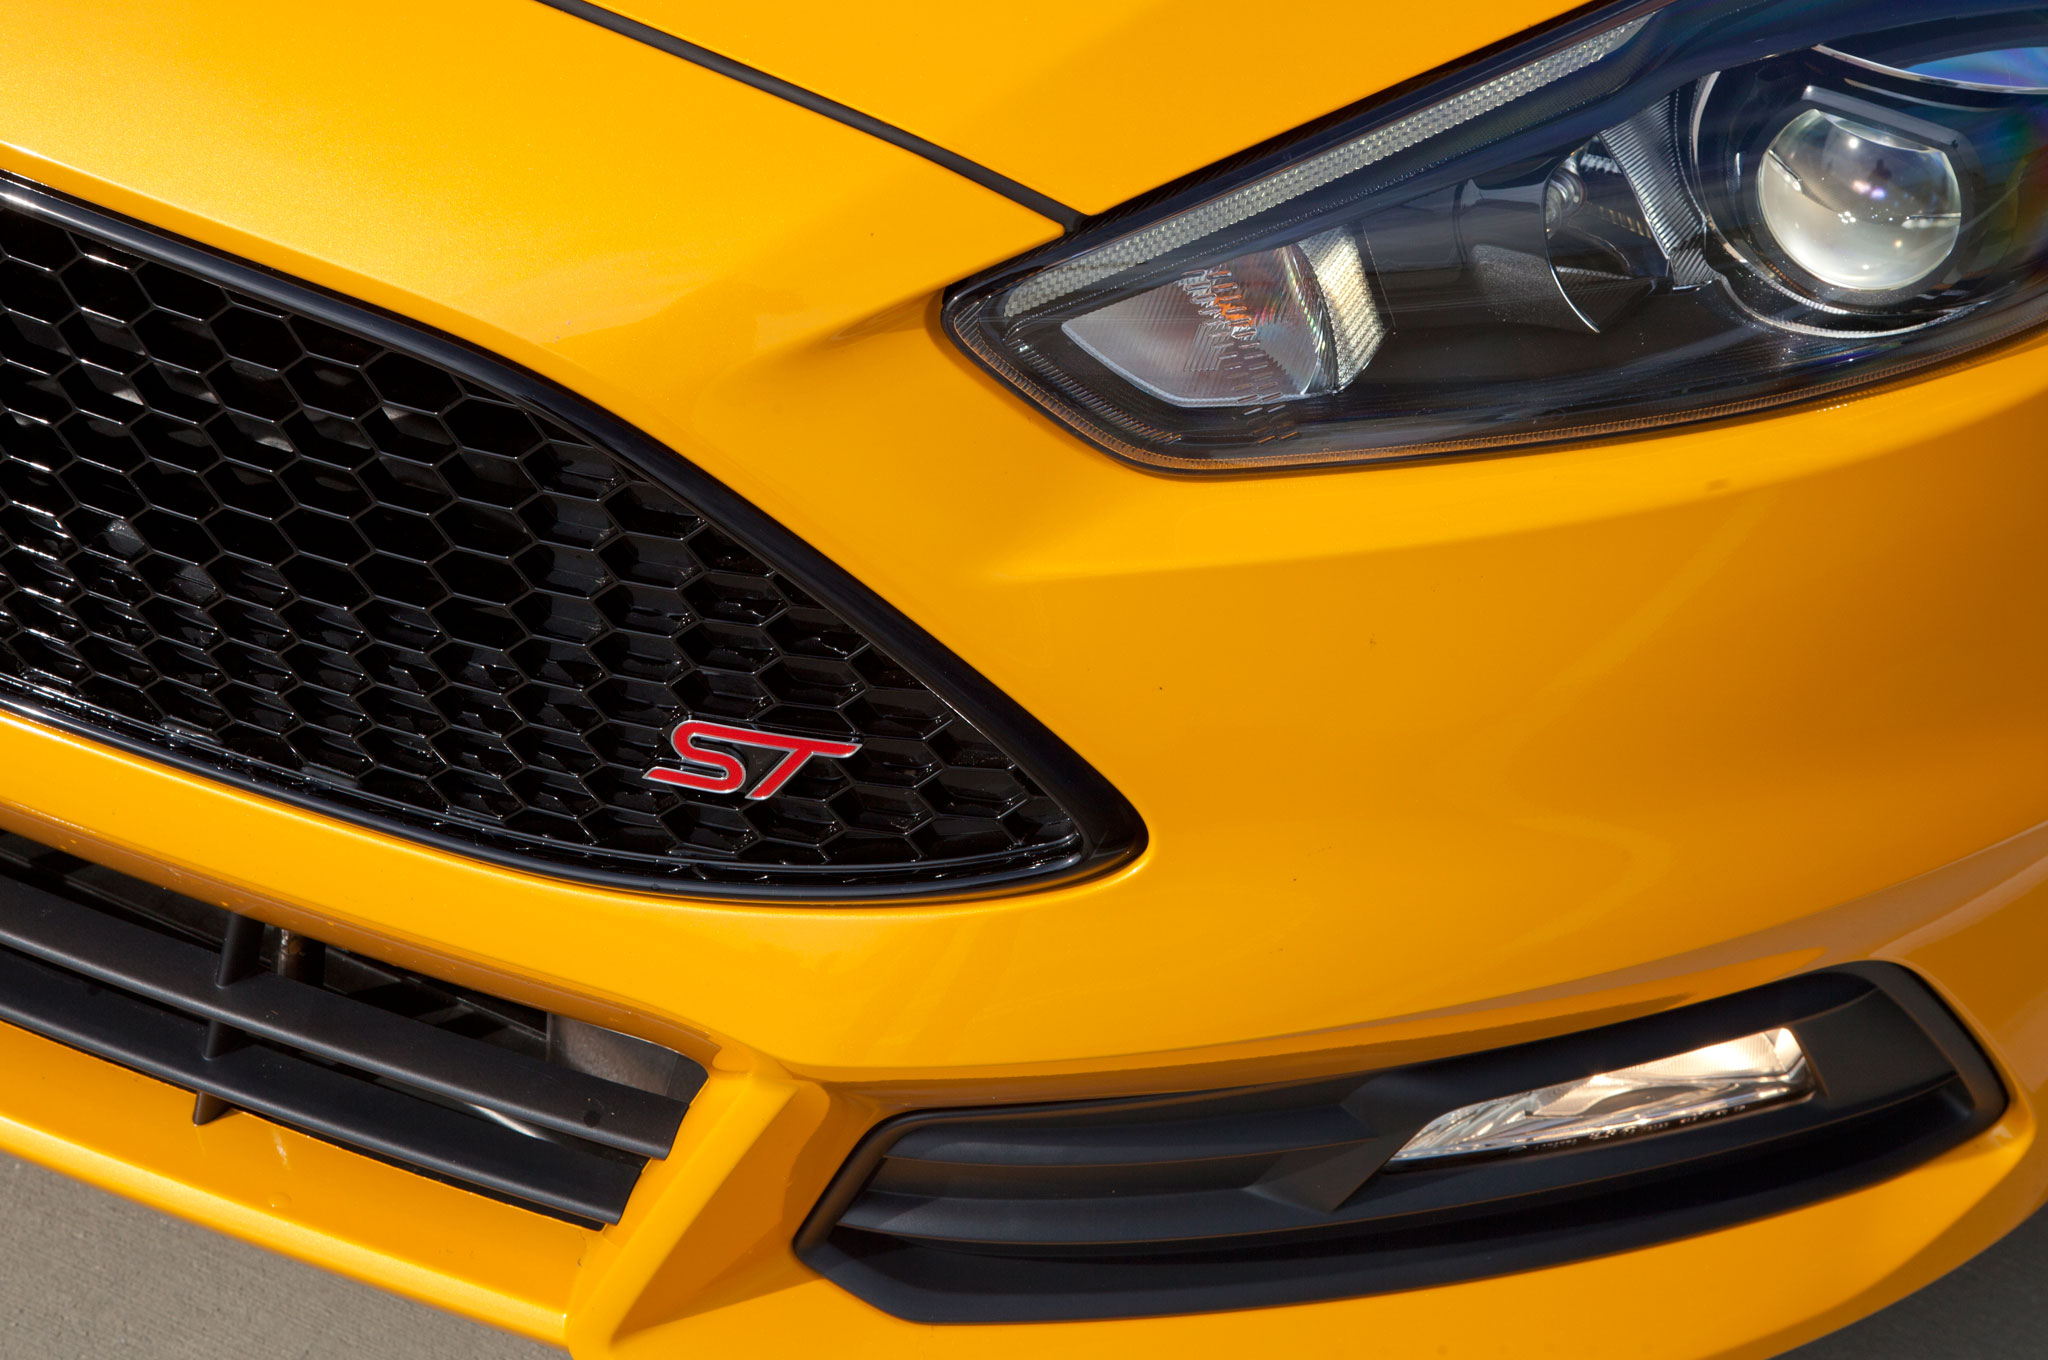 Ford Edge 2017 >> Ford focus ST/ Build a 2012 facelift in 2015